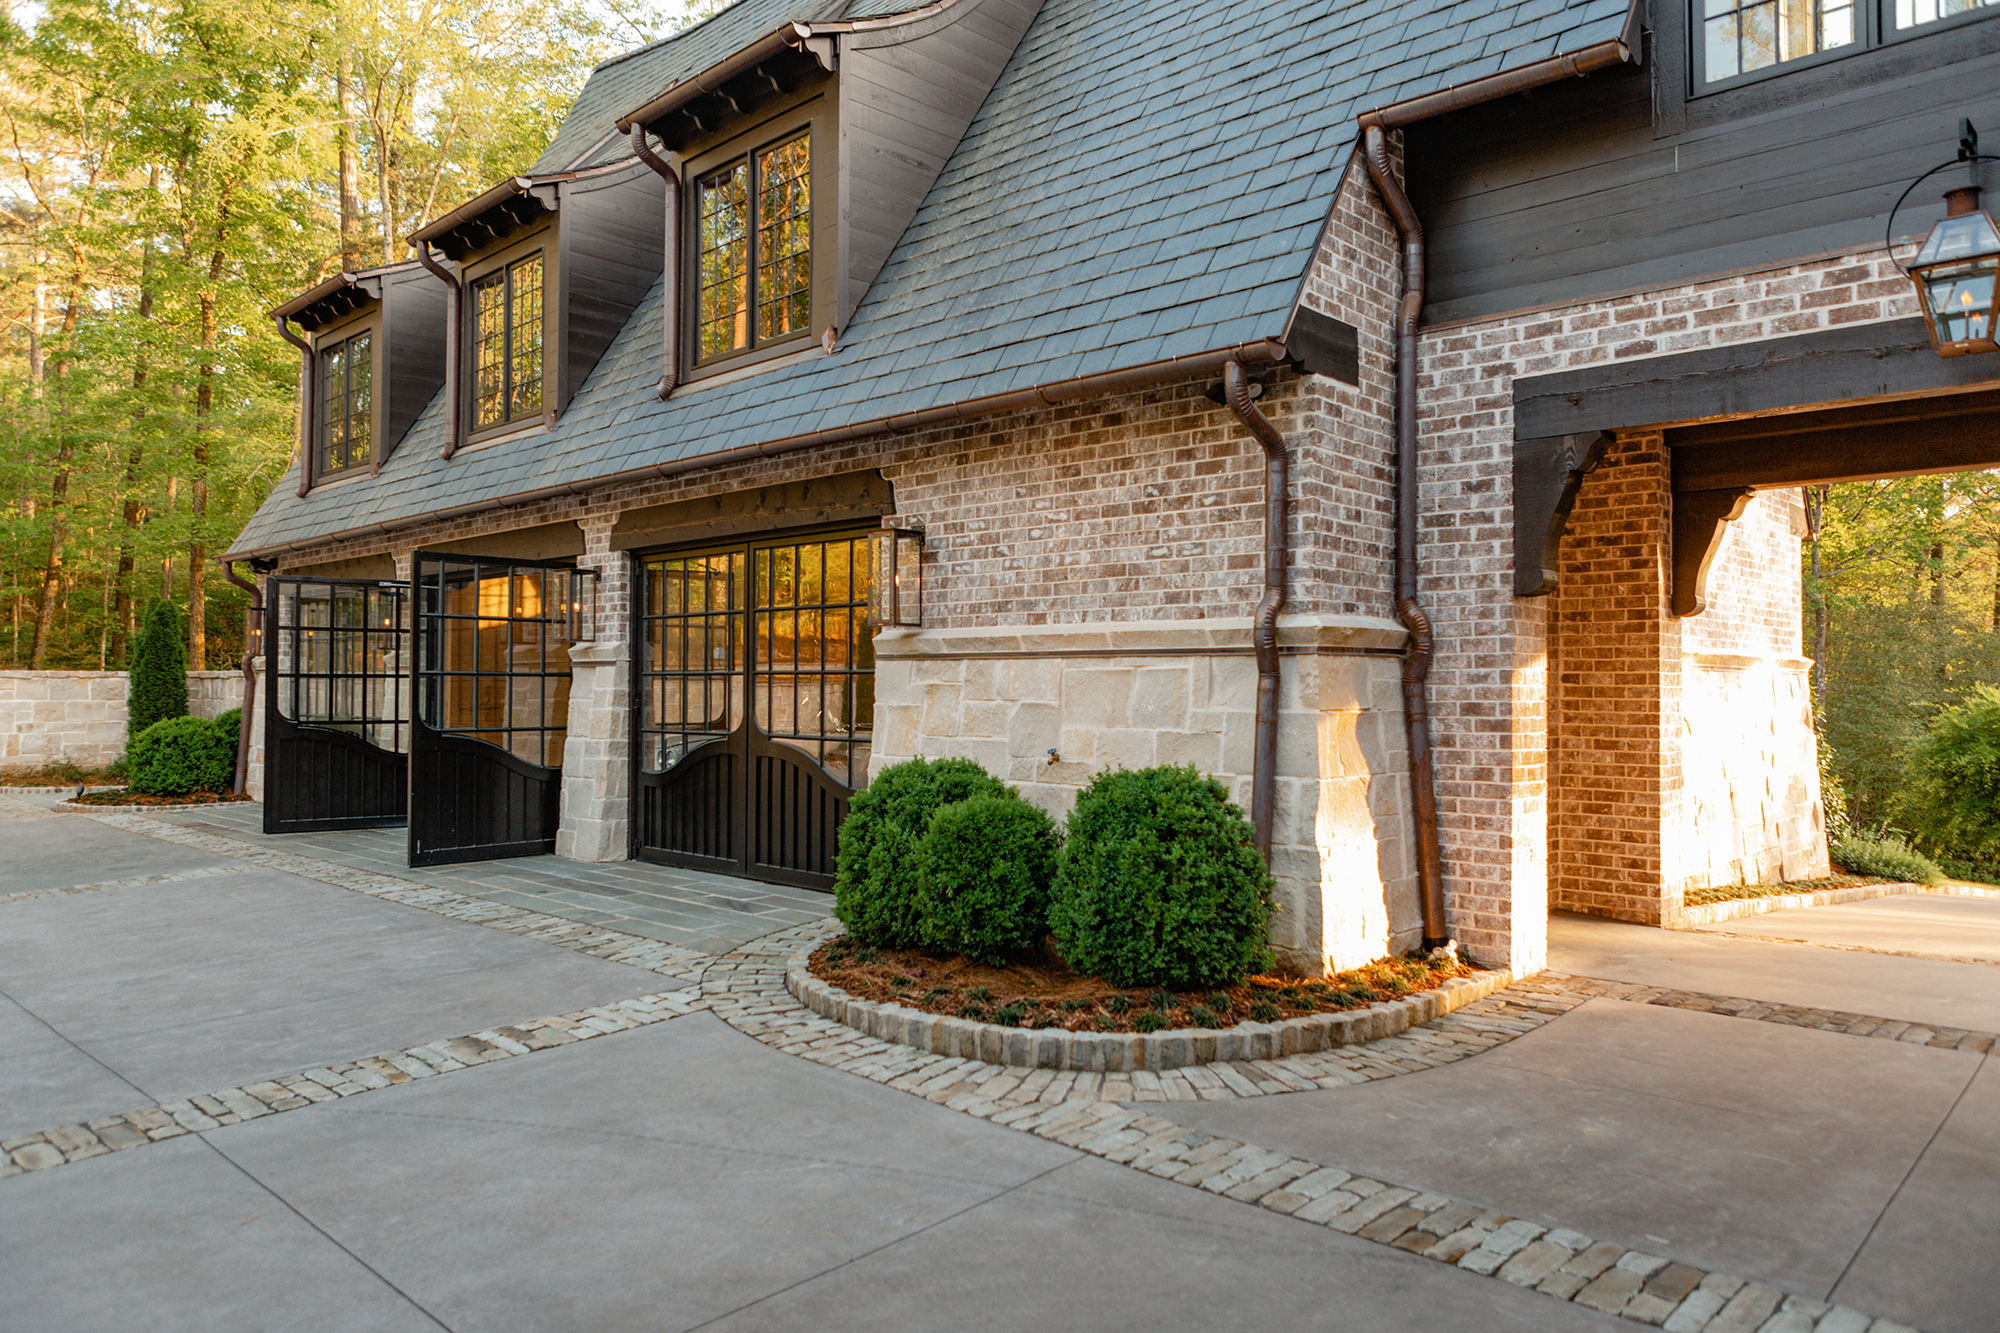 "In their architectural work, the team at Christopher Architecture & Interiors saw the need to add a sense of luxury to a previously overlooked part of the home: garage doors. They developed tailor-made, out-swinging carriage garage doors which have side hinges, enabling them to function like larger front doors. With eight standard designs in the Bespoke Forged line, they can also customize the doors to match any home's style. Their doors even have the option of a ""man door,"" offering a section of the door that will open just for a person to walk through without having to open the entire unit."